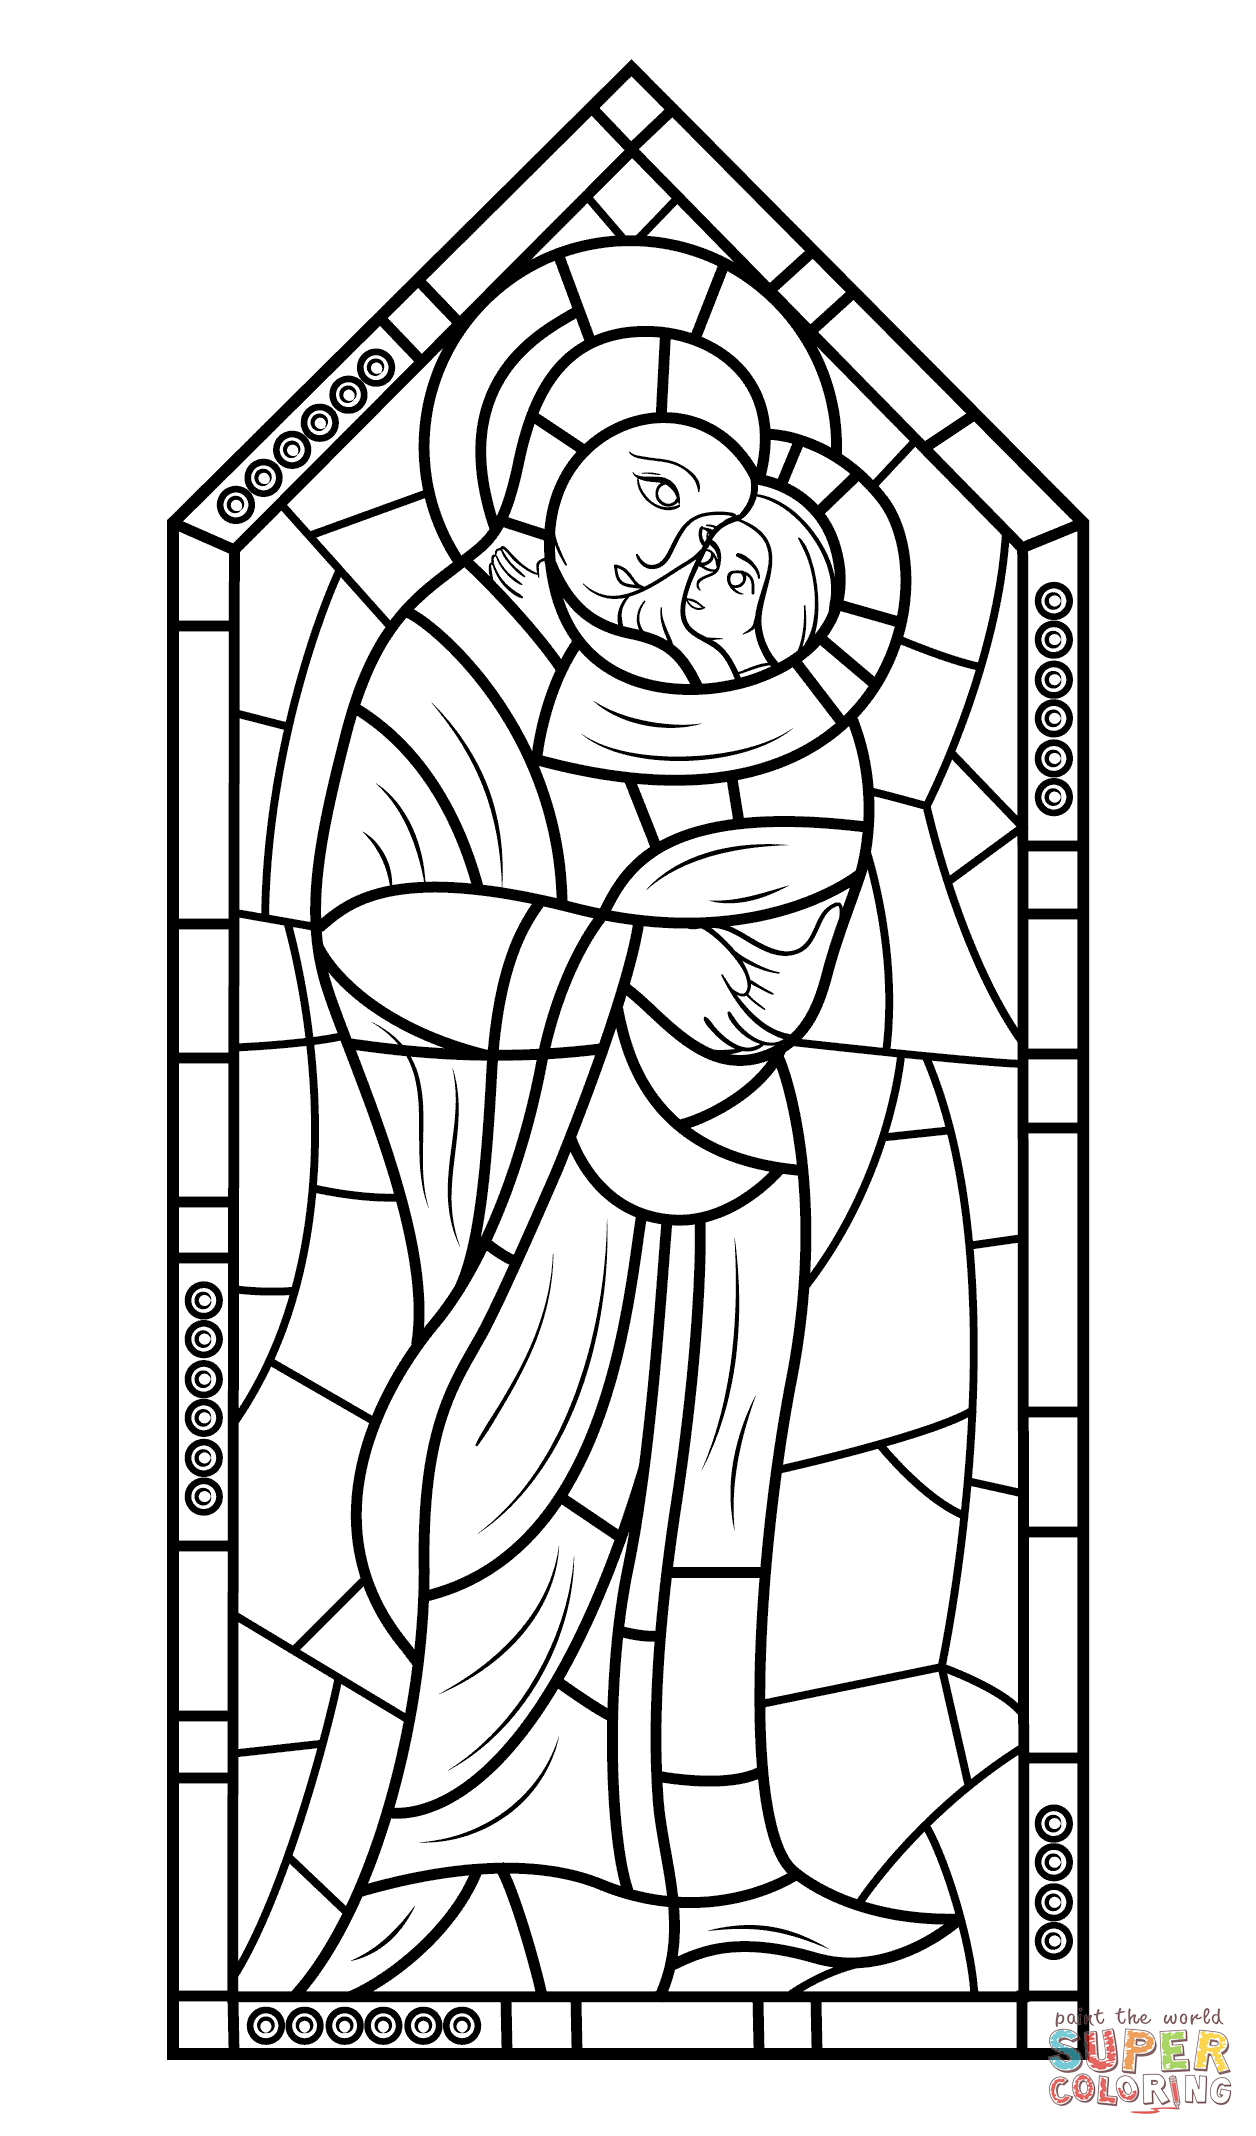 Mother Mary With Jesus Stained Glass Coloring Page | Free ...